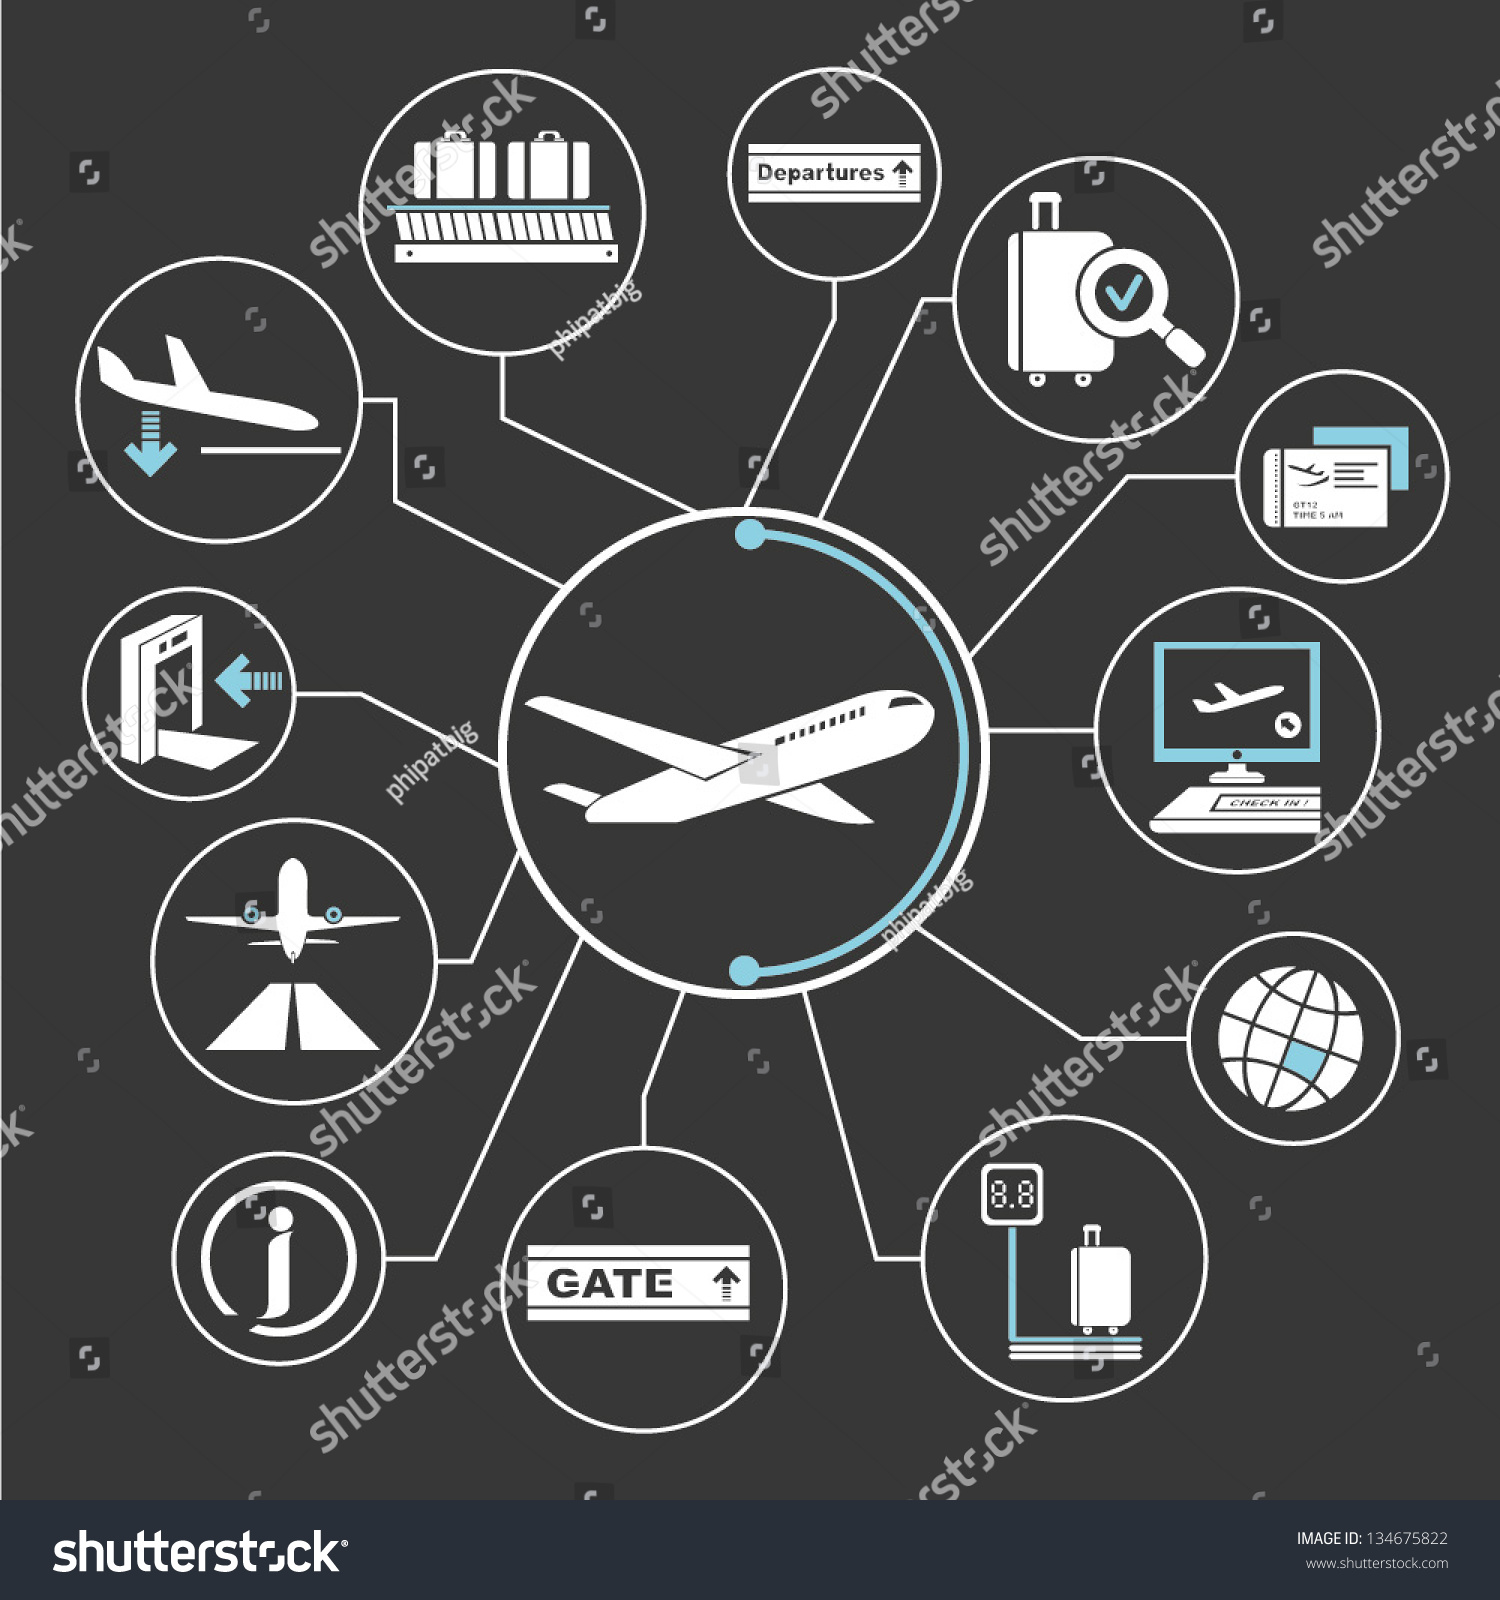 Airport mind map info graphics stock vector illustration 134675822 shutterstock - Jabsin design ...